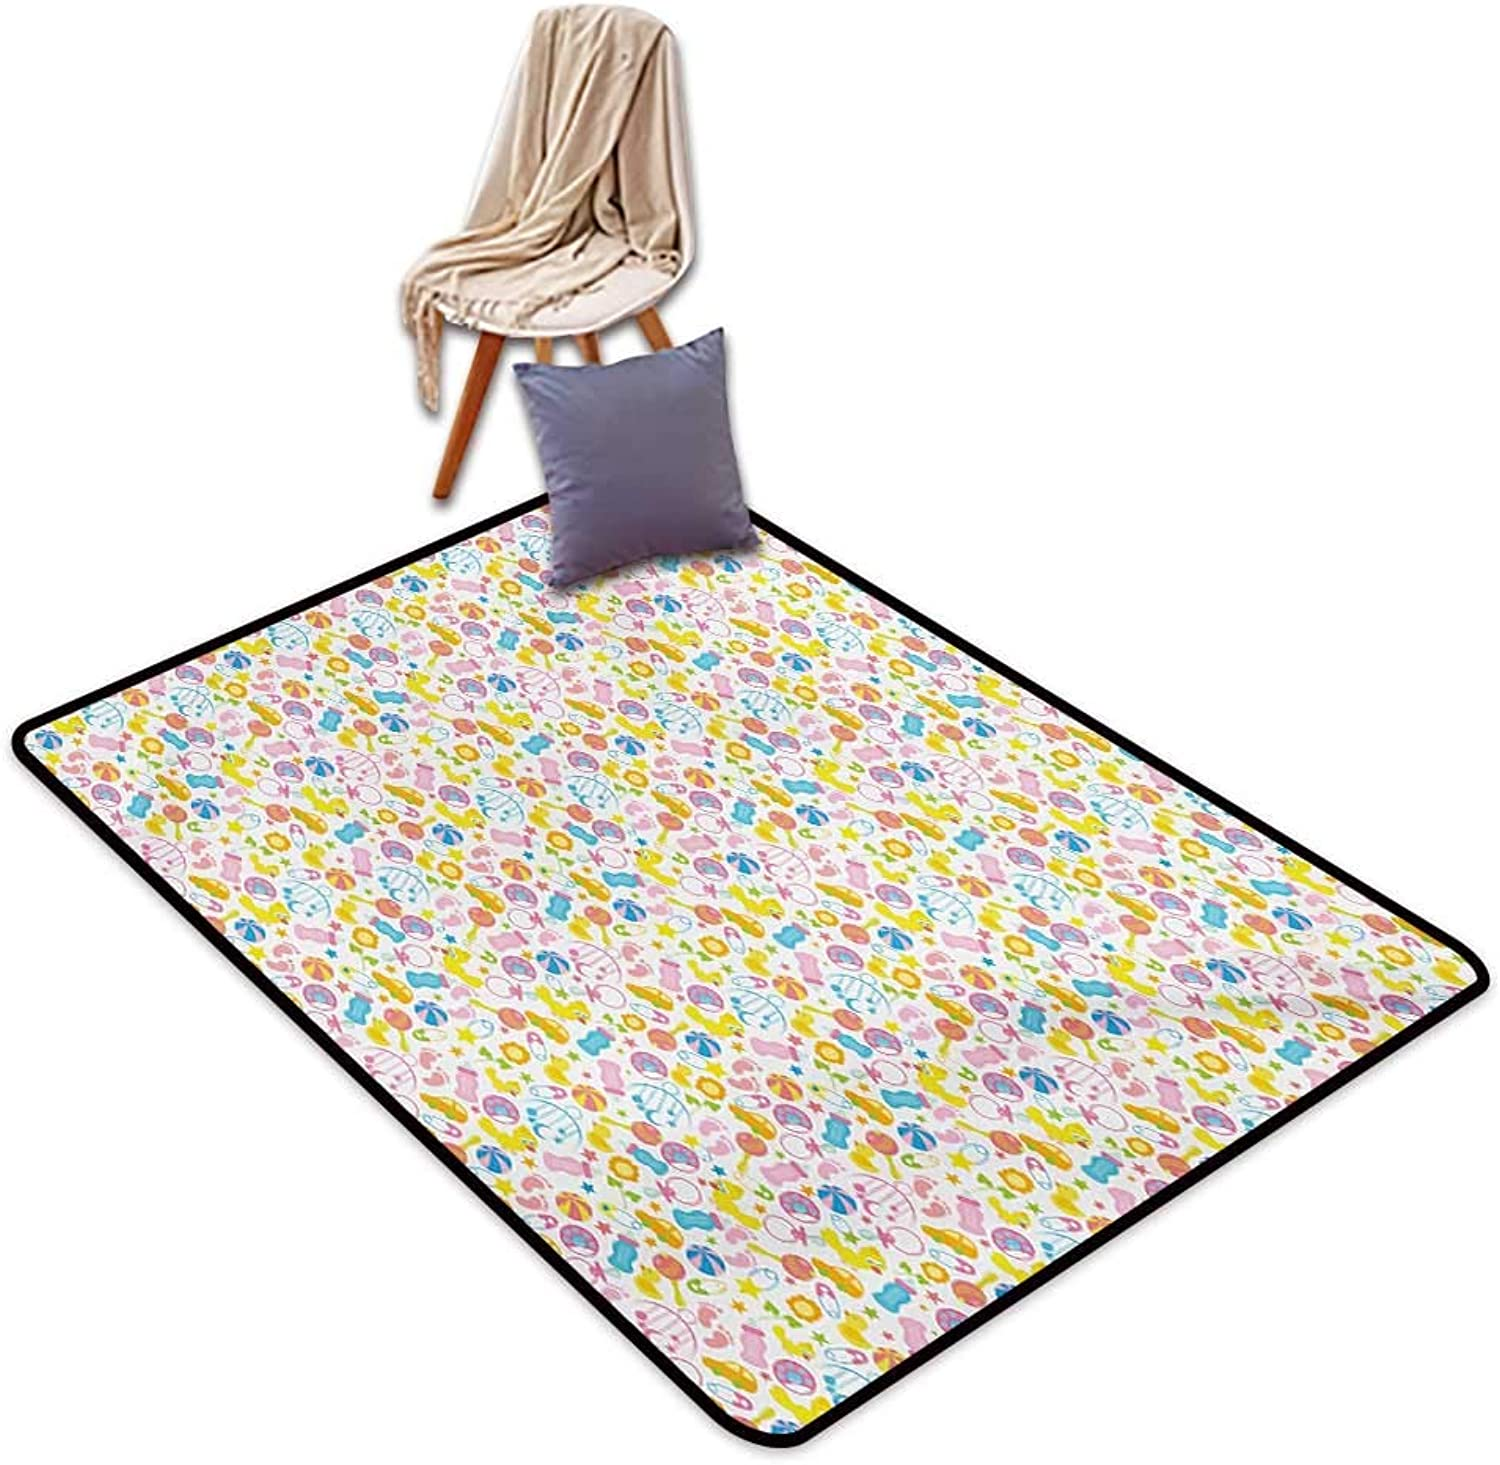 Baby Large Outdoor Indoor Rubber Doormat Assortment of Infant Items Toys Footprints Milk Bottles Flower Arrangement Design Water Absorption, Anti-Skid and Oil Proof 48  Wx59 L Multicolor